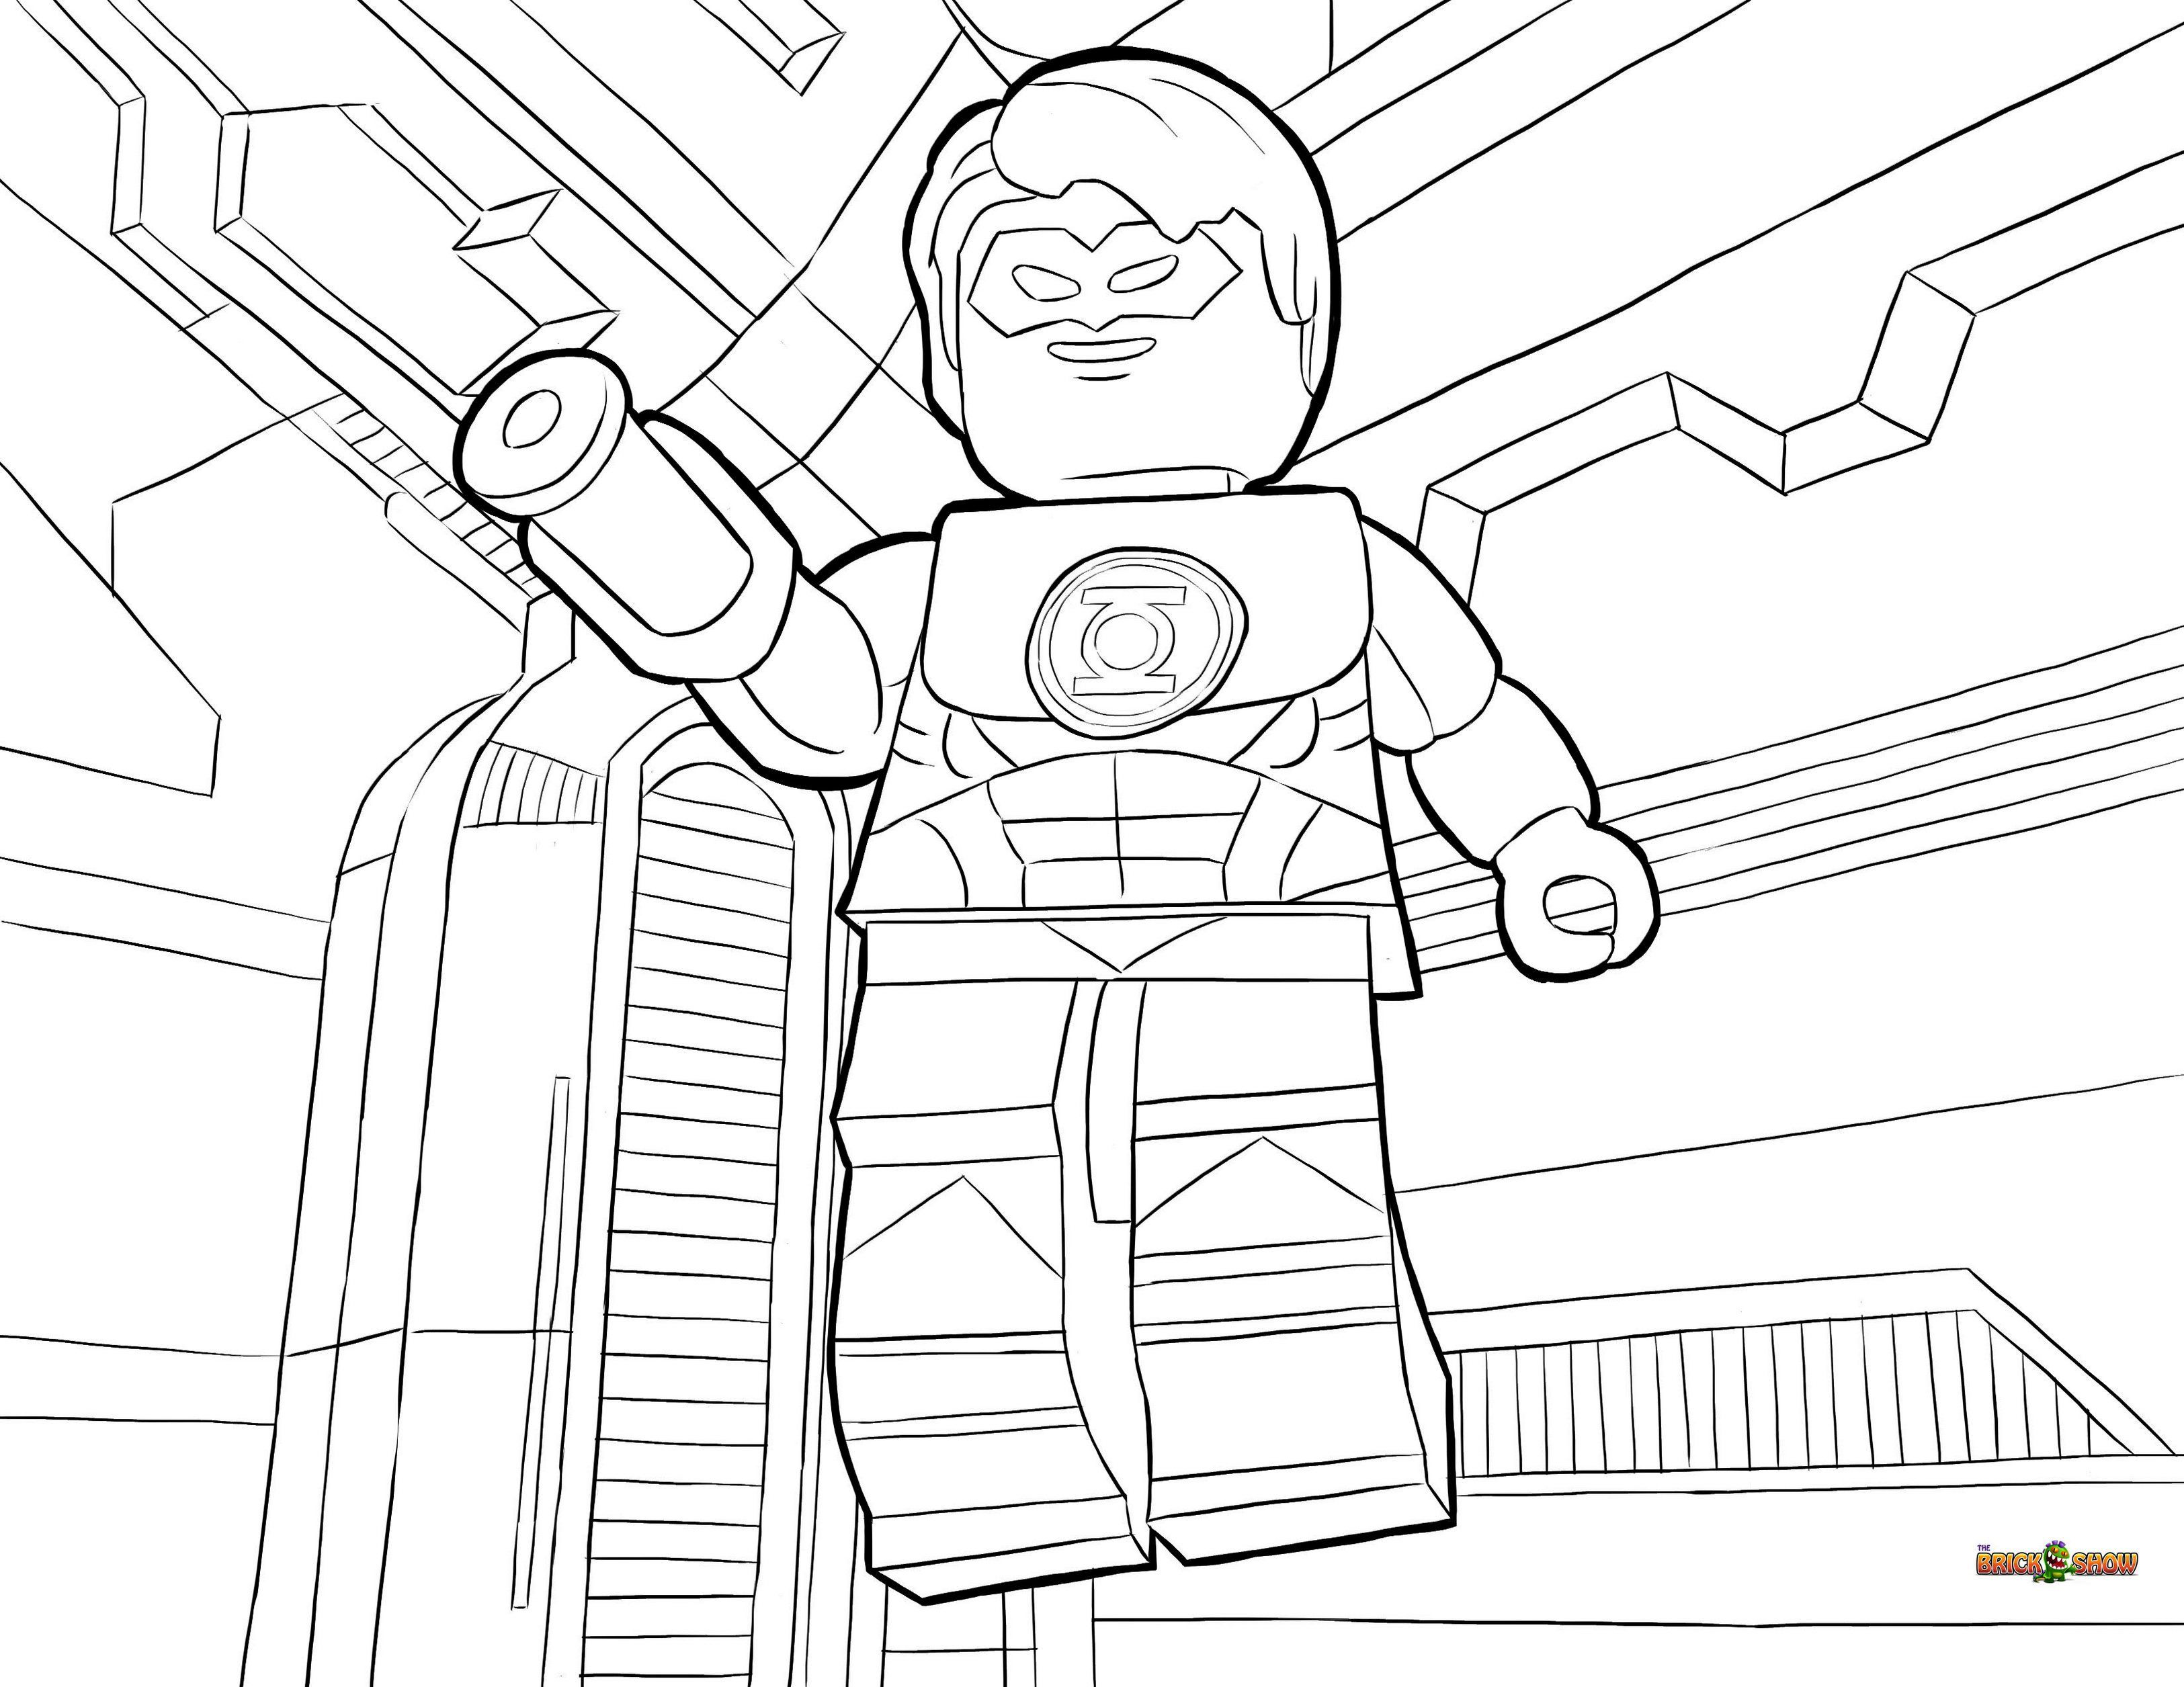 Lego Green Lantern Coloring Book | superhero coloring and activity ...